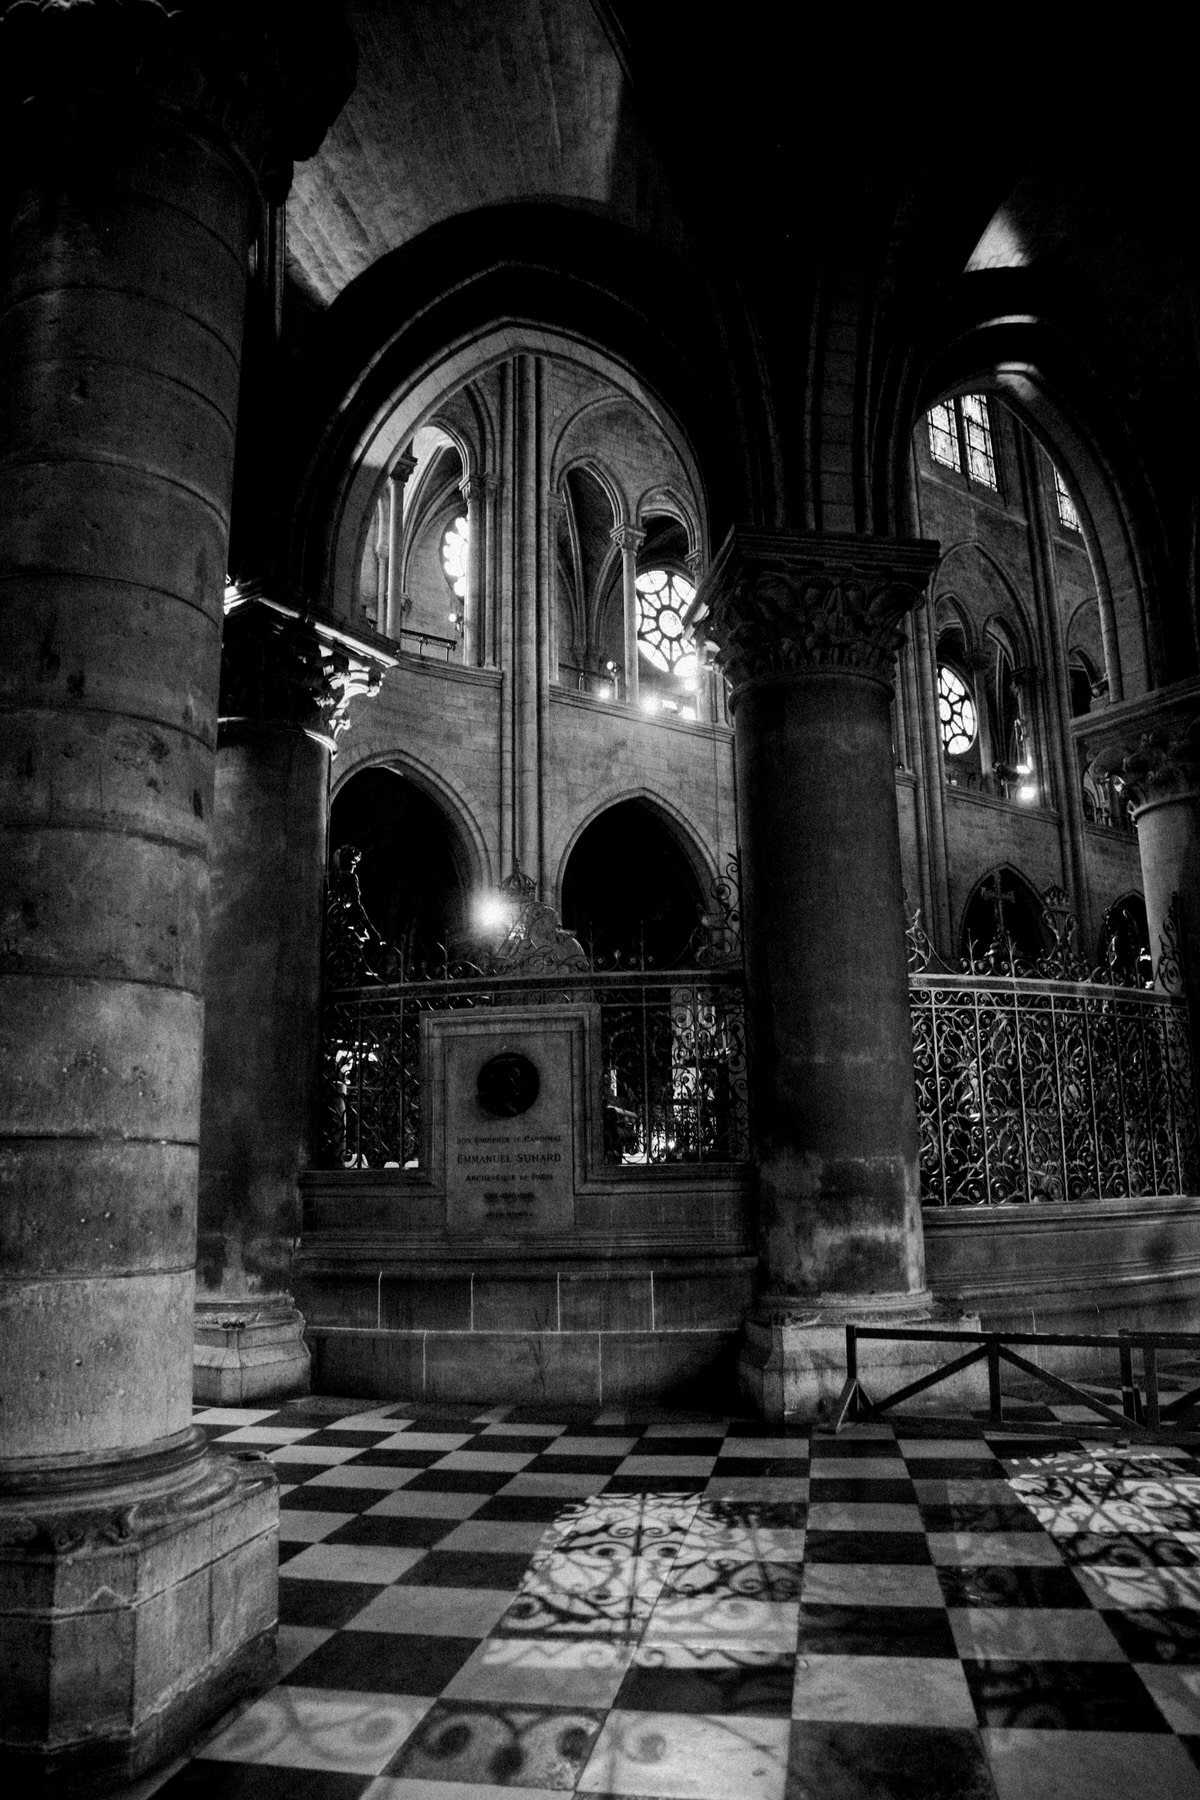 Notre-Dame-Paris-France-fine-art-photography-by-Studio-L-photographer-Laura-Schneider-_4964